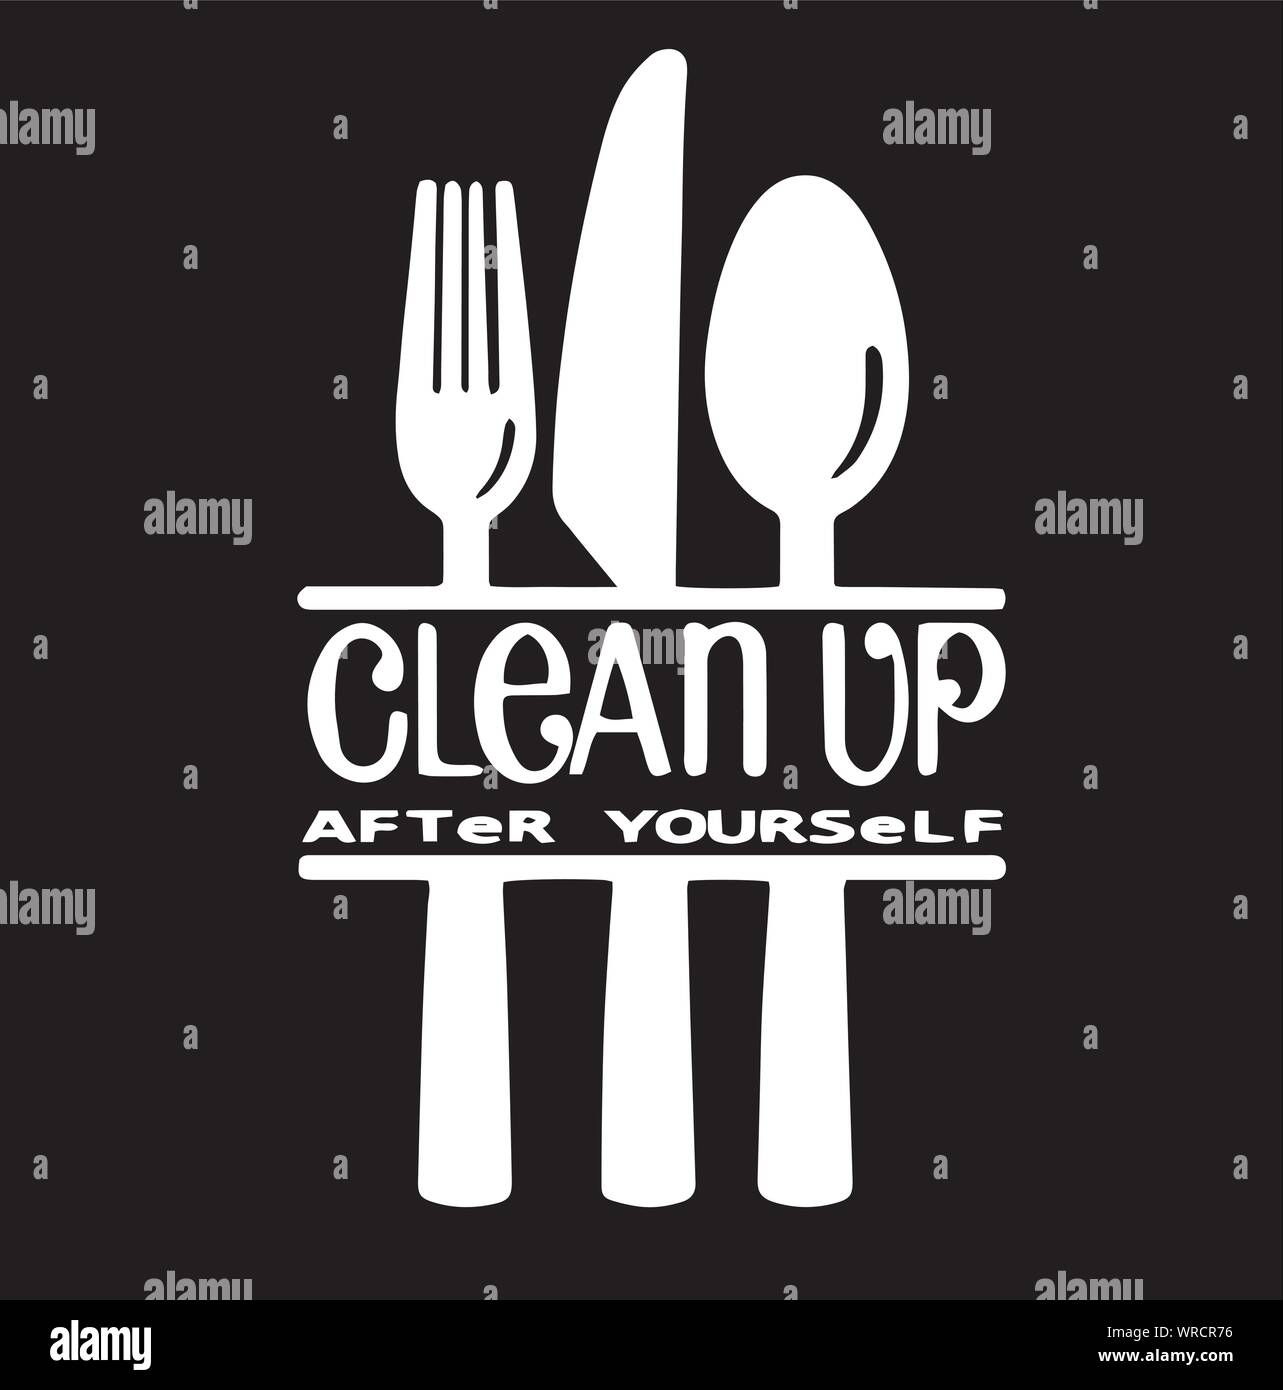 Kitchen Utensils Illustration Background Clean Up After Yourself Inspirational Quotes And Motivational Typography Art Lettering Composition Vector Stock Vector Image Art Alamy